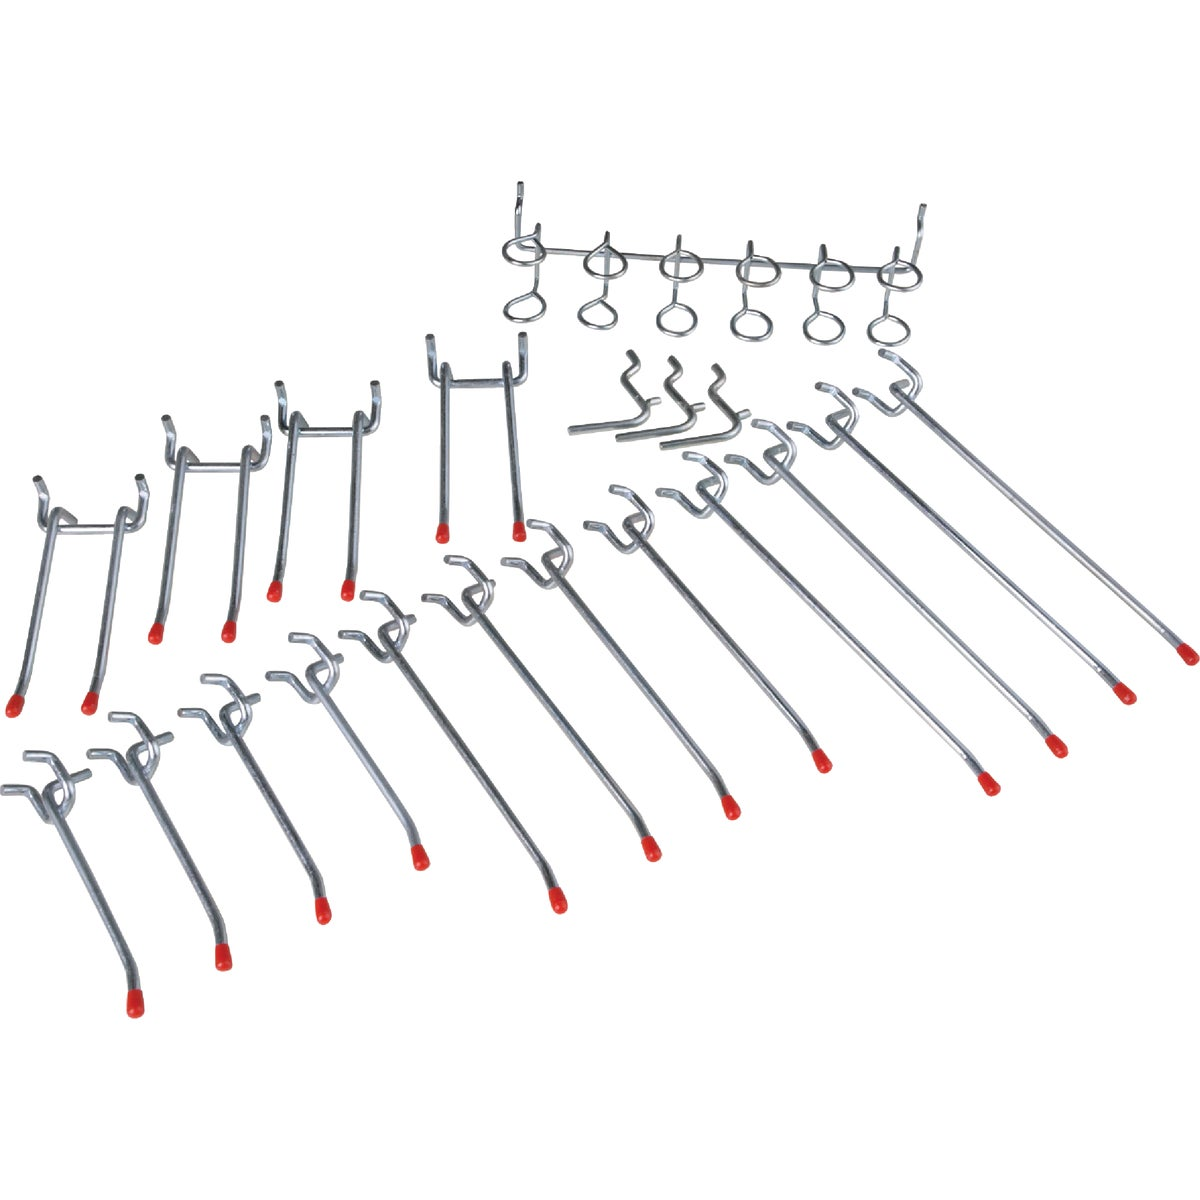 20 PC PEG HOOK SET